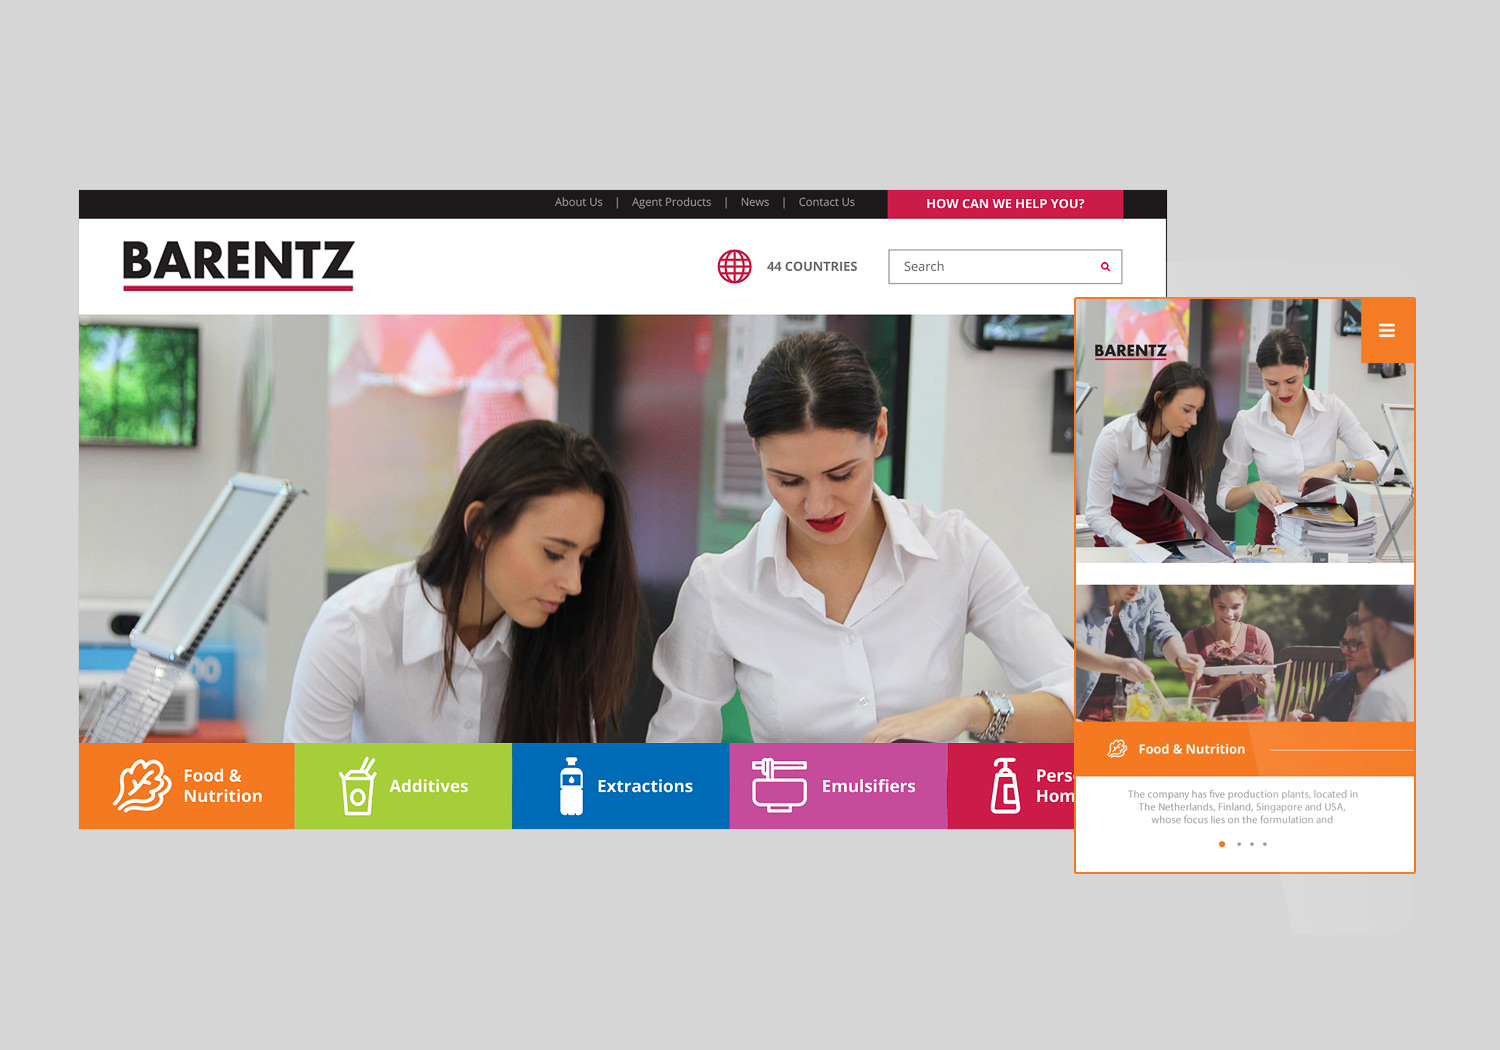 barentz-main-banner website design